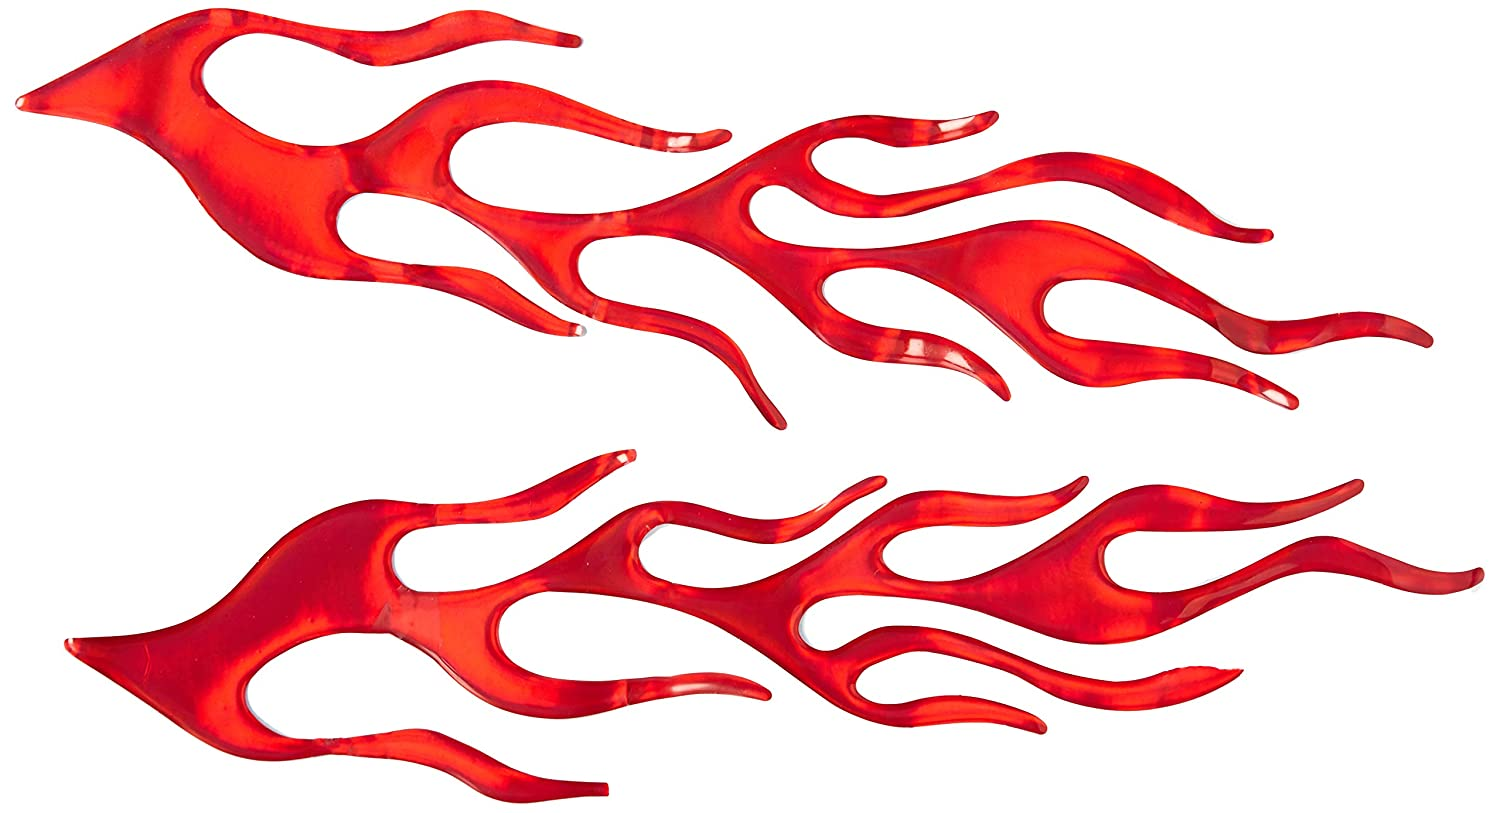 Uxcell a11101100ux0116 2 in 1 Auto Car Red Plastic Flame Shaped Reflective Stickers Unknown